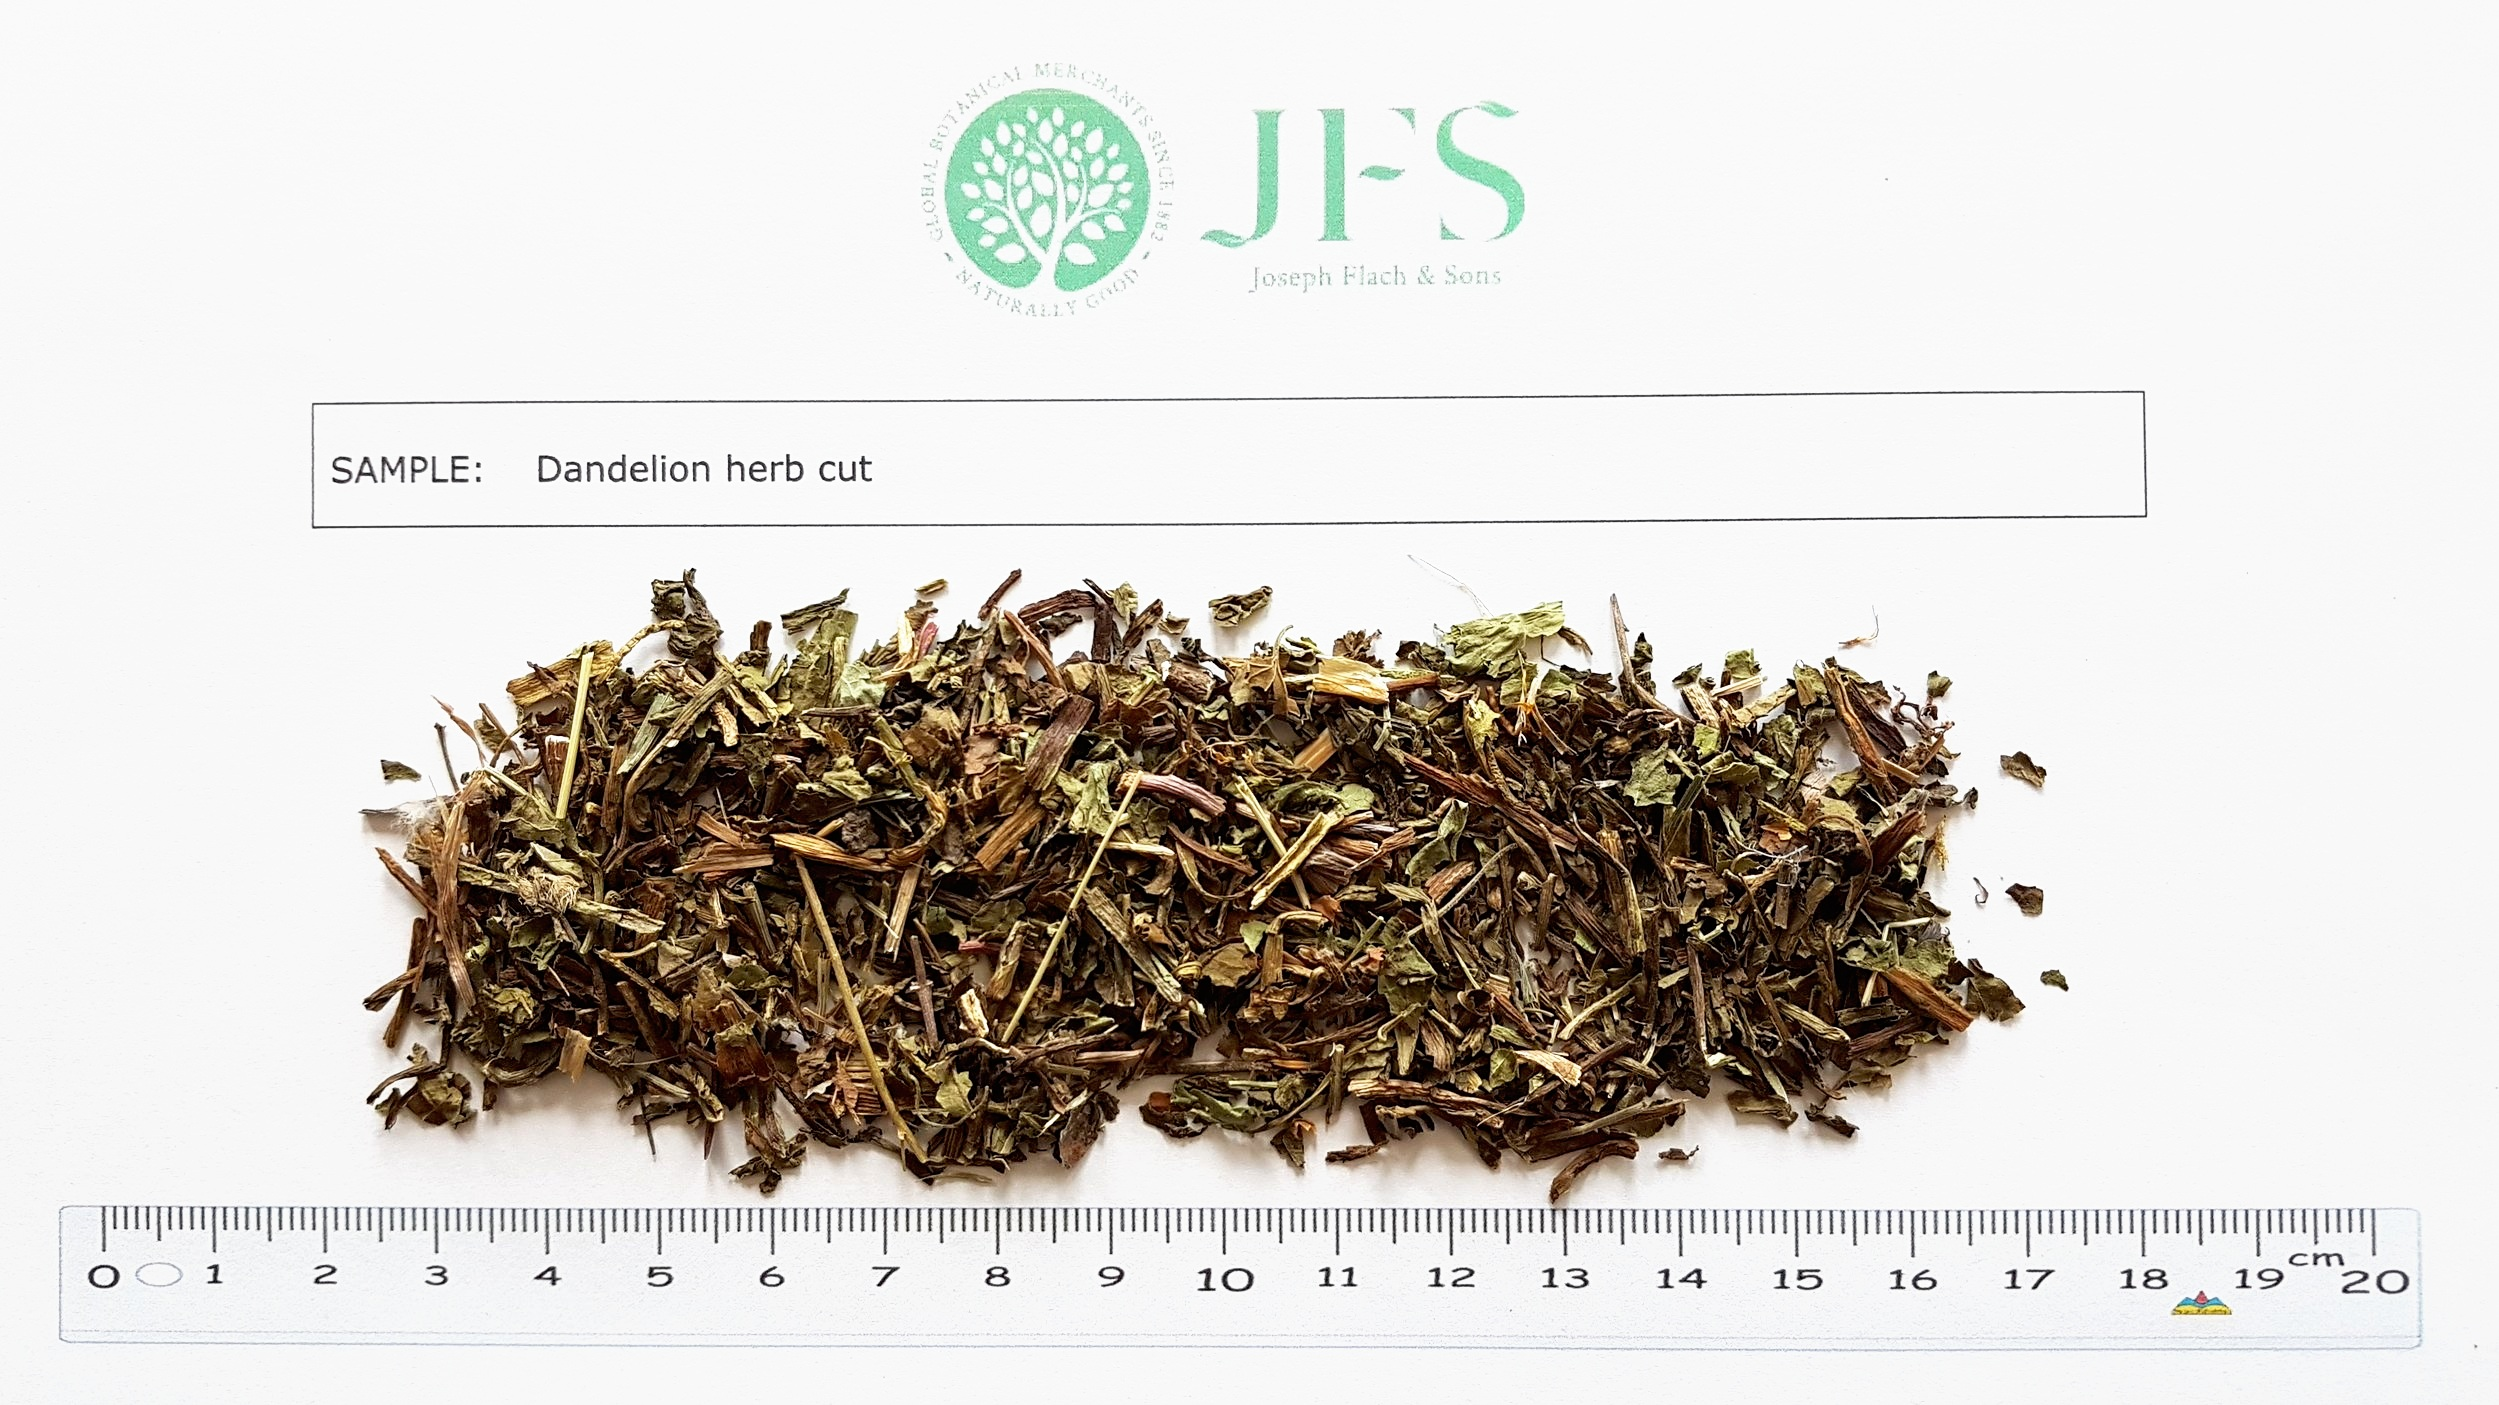 Dandelion+herb+cut+JFS+sample.jpg